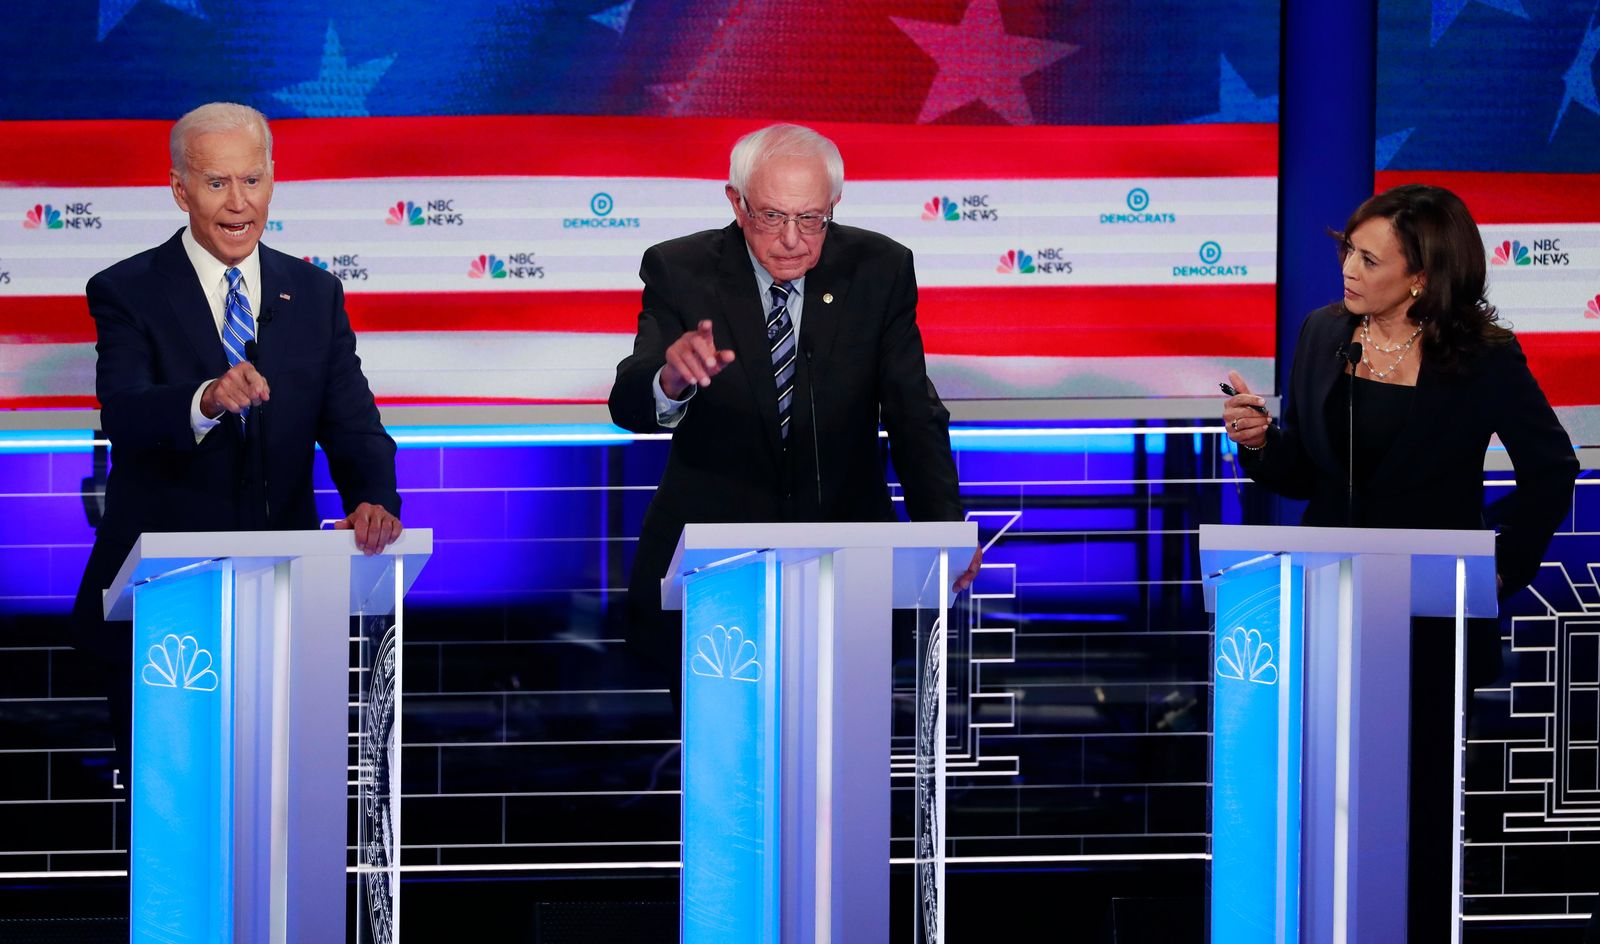 Democratic presidential candidate former vice president Joe Biden, left, Sen. Bernie Sanders, I-Vt., and Sen. Kamala Harris, D-Calif., all talk at the same time during the Democratic primary debate hosted by NBC News at the Adrienne Arsht Center for the Performing Arts, Thursday, June 27, 2019, in Miami. (AP Photo/Wilfredo Lee)